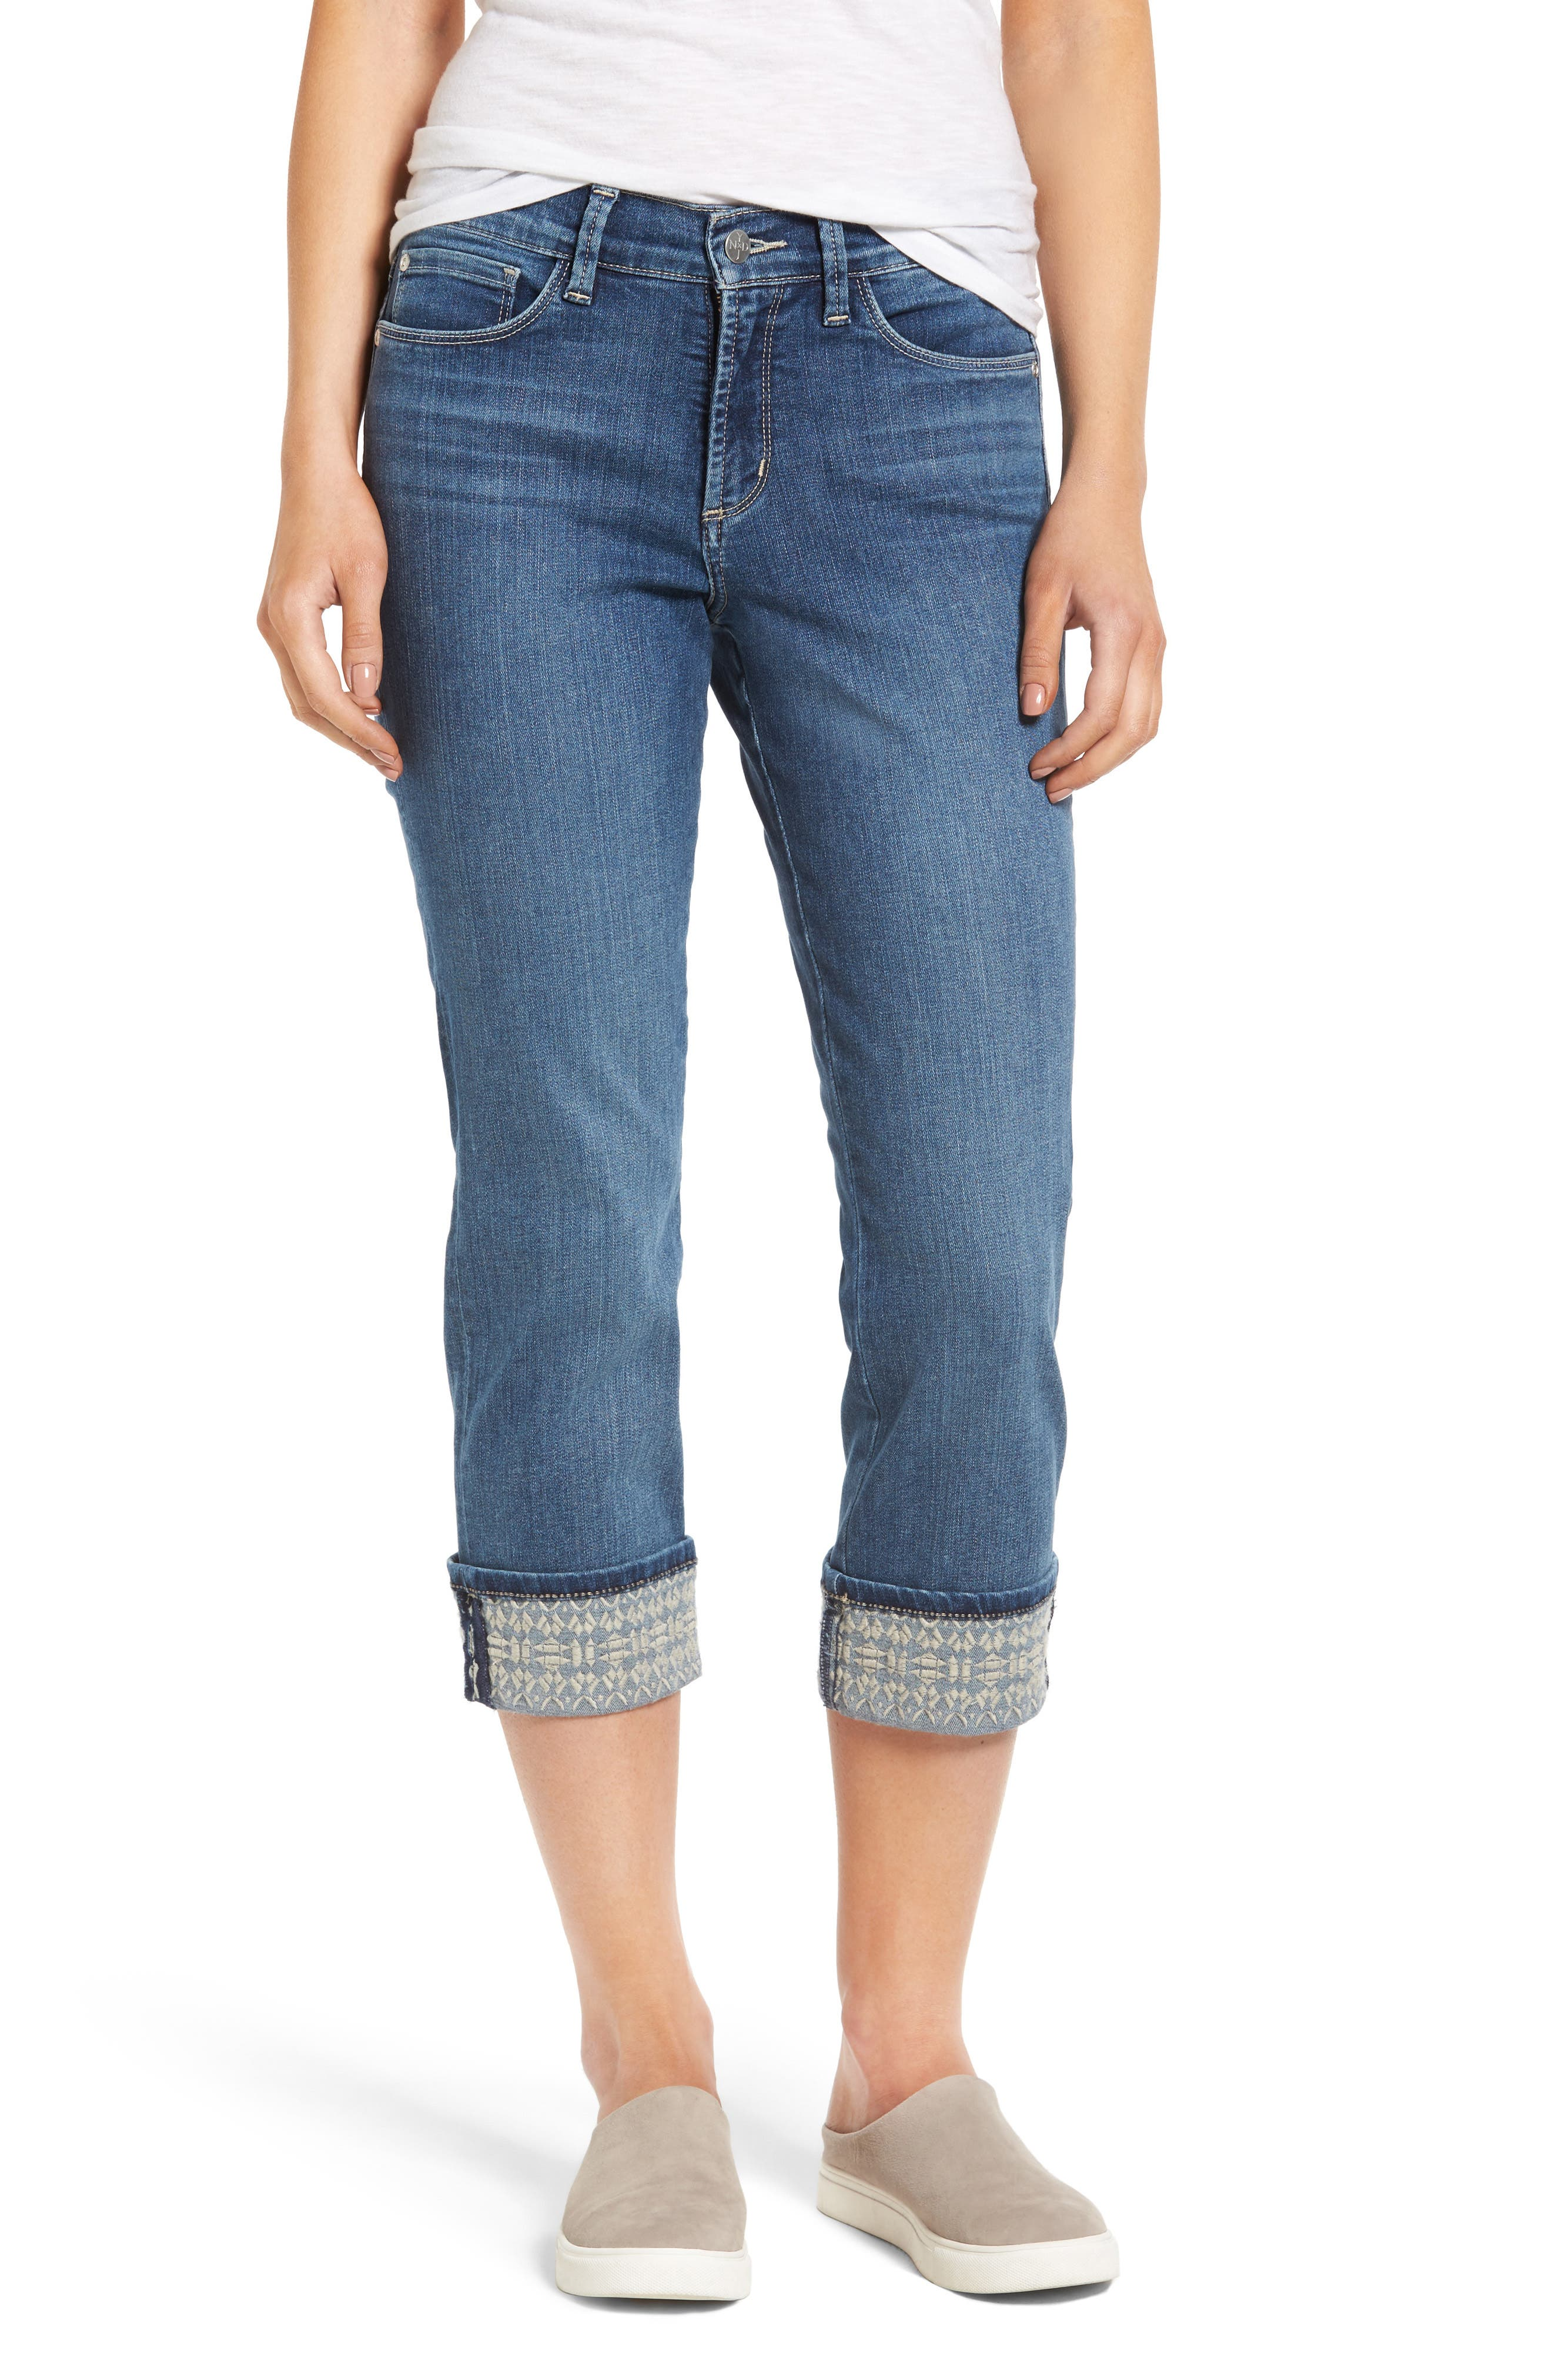 Alternate Image 1 Selected - NYDJ Dayla Embroidered Wide Cuff Capri Jeans (Heyburn)